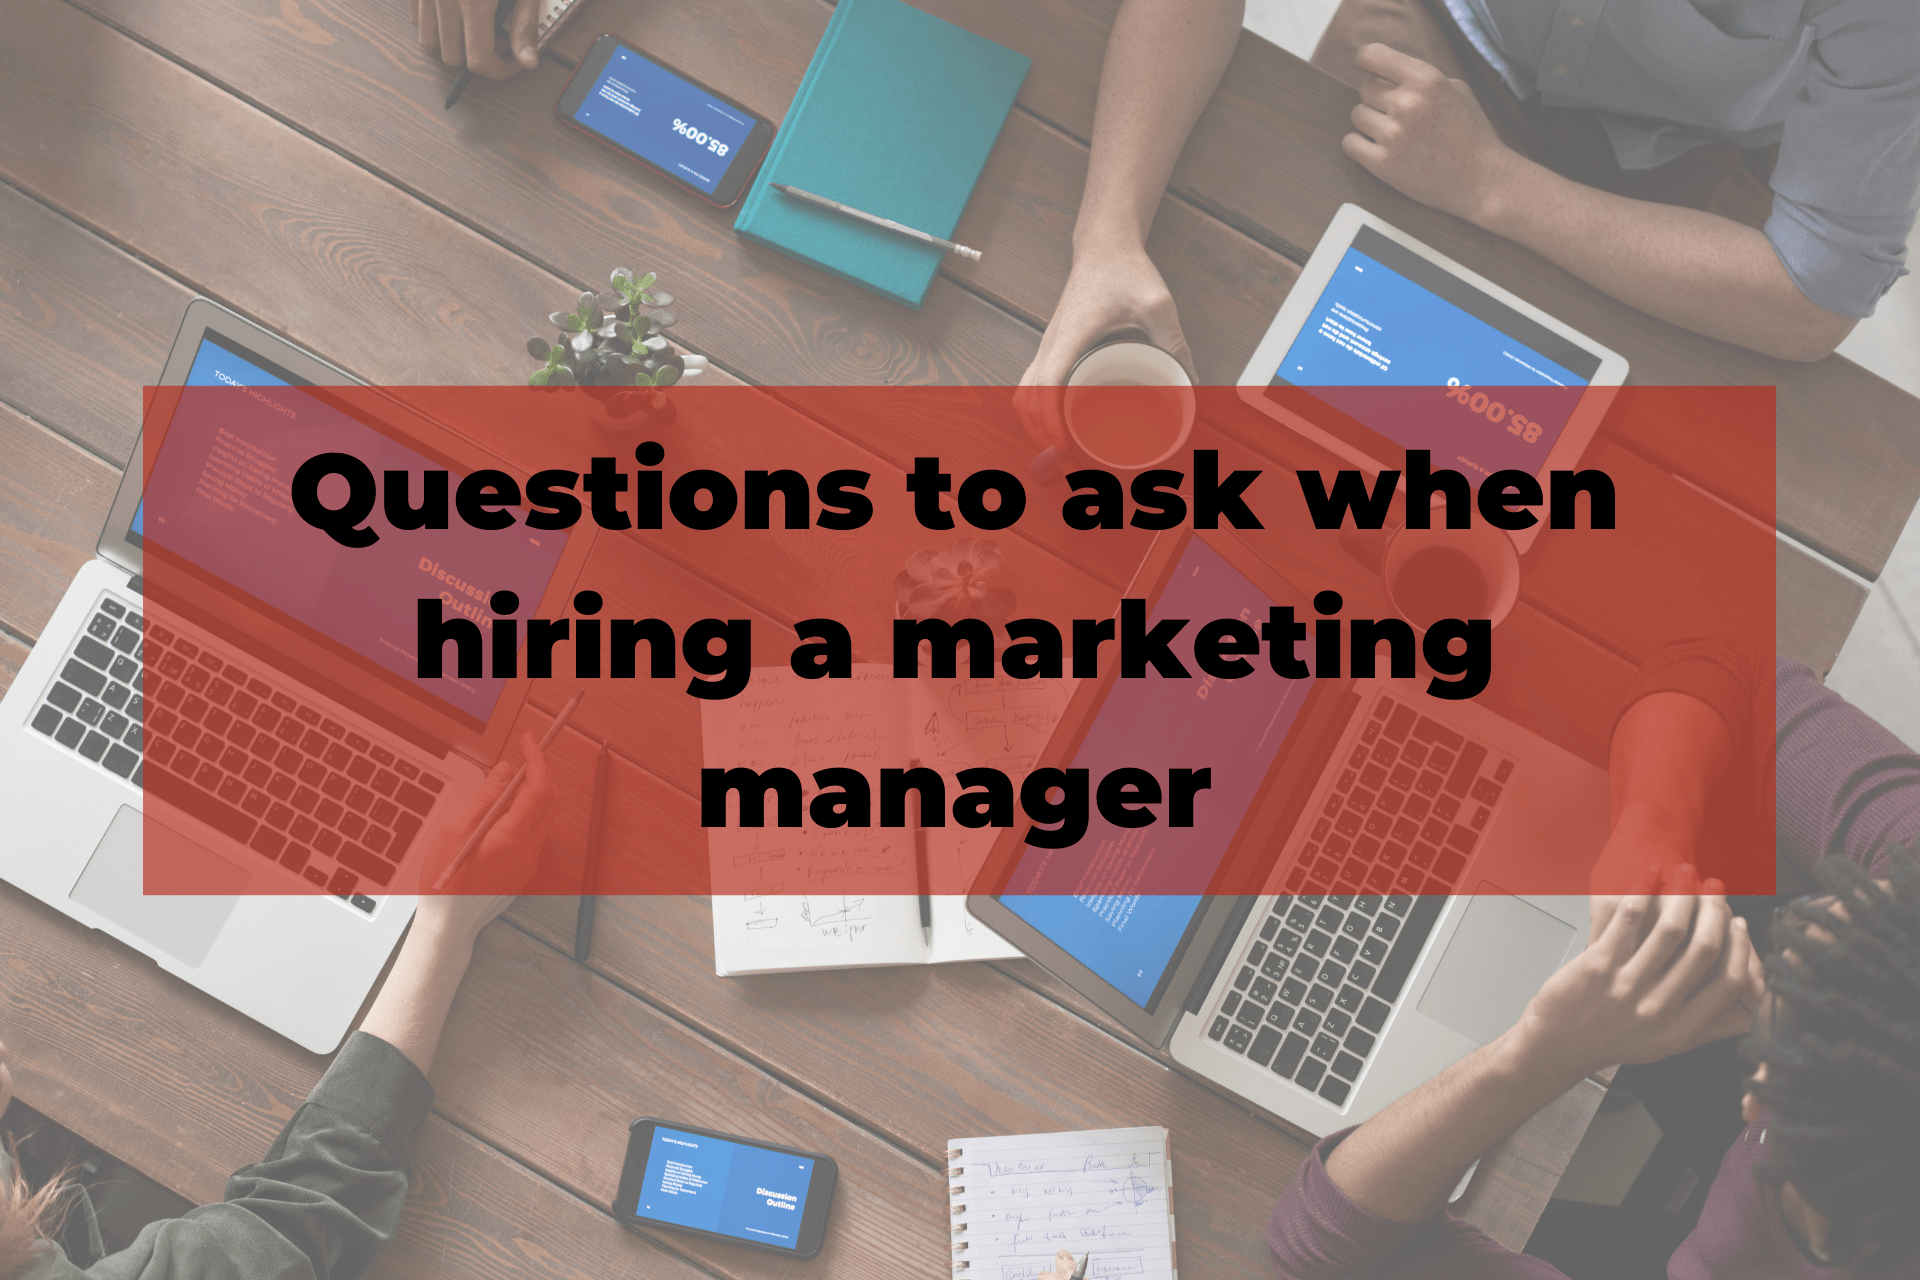 Questions to ask when hiring a marketing manager